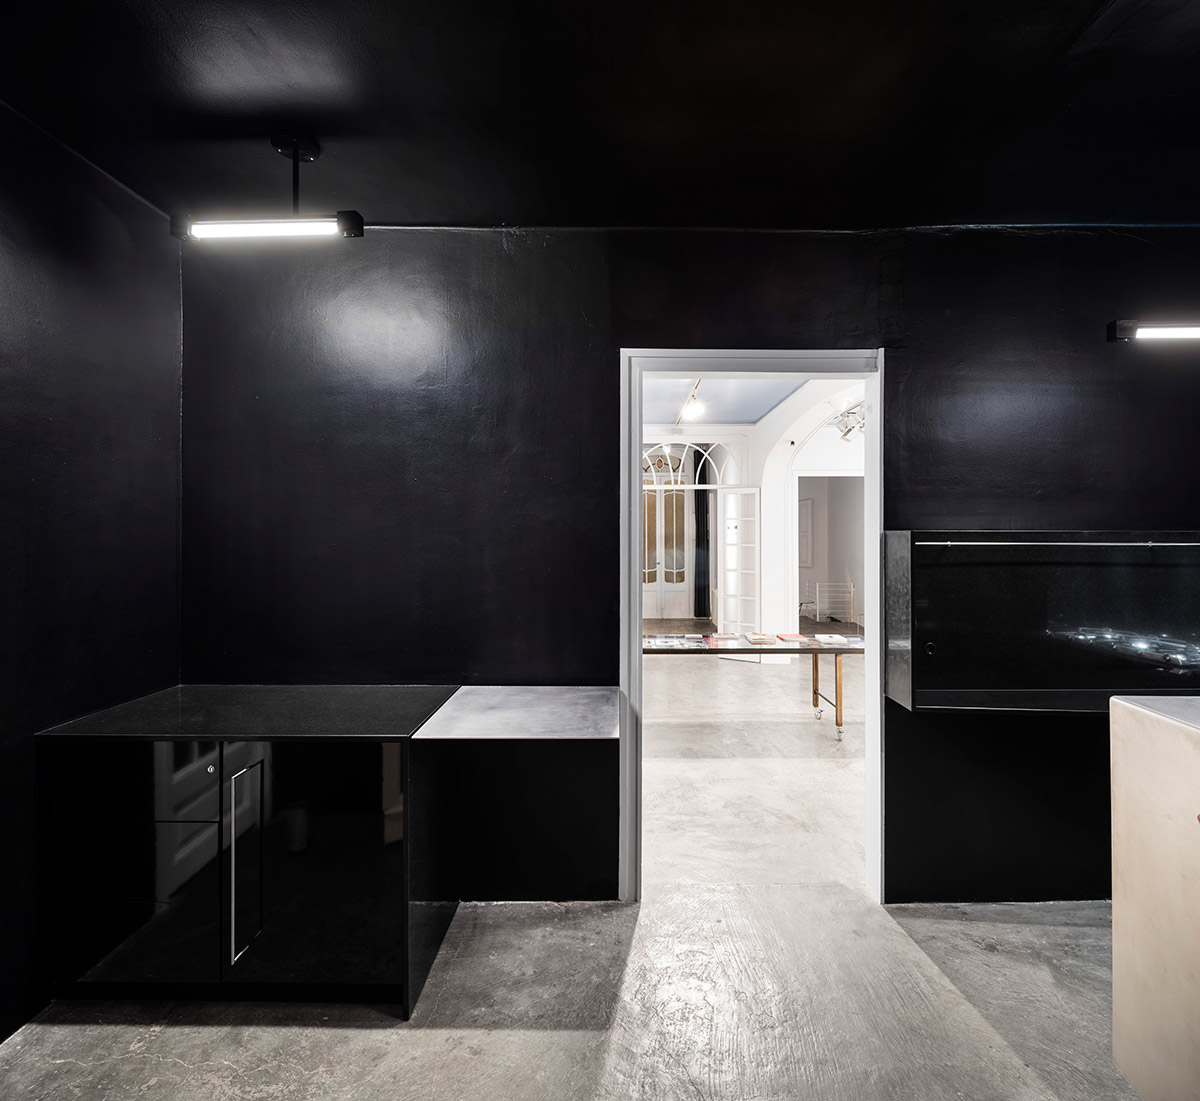 reforma_cocina_cuina_barcelona_gracia_galeria_art_arte_kitchen_renovation_refurbishment_negra_black_proyecto_projecte_interiorismo_interiorisme_pinterest_6